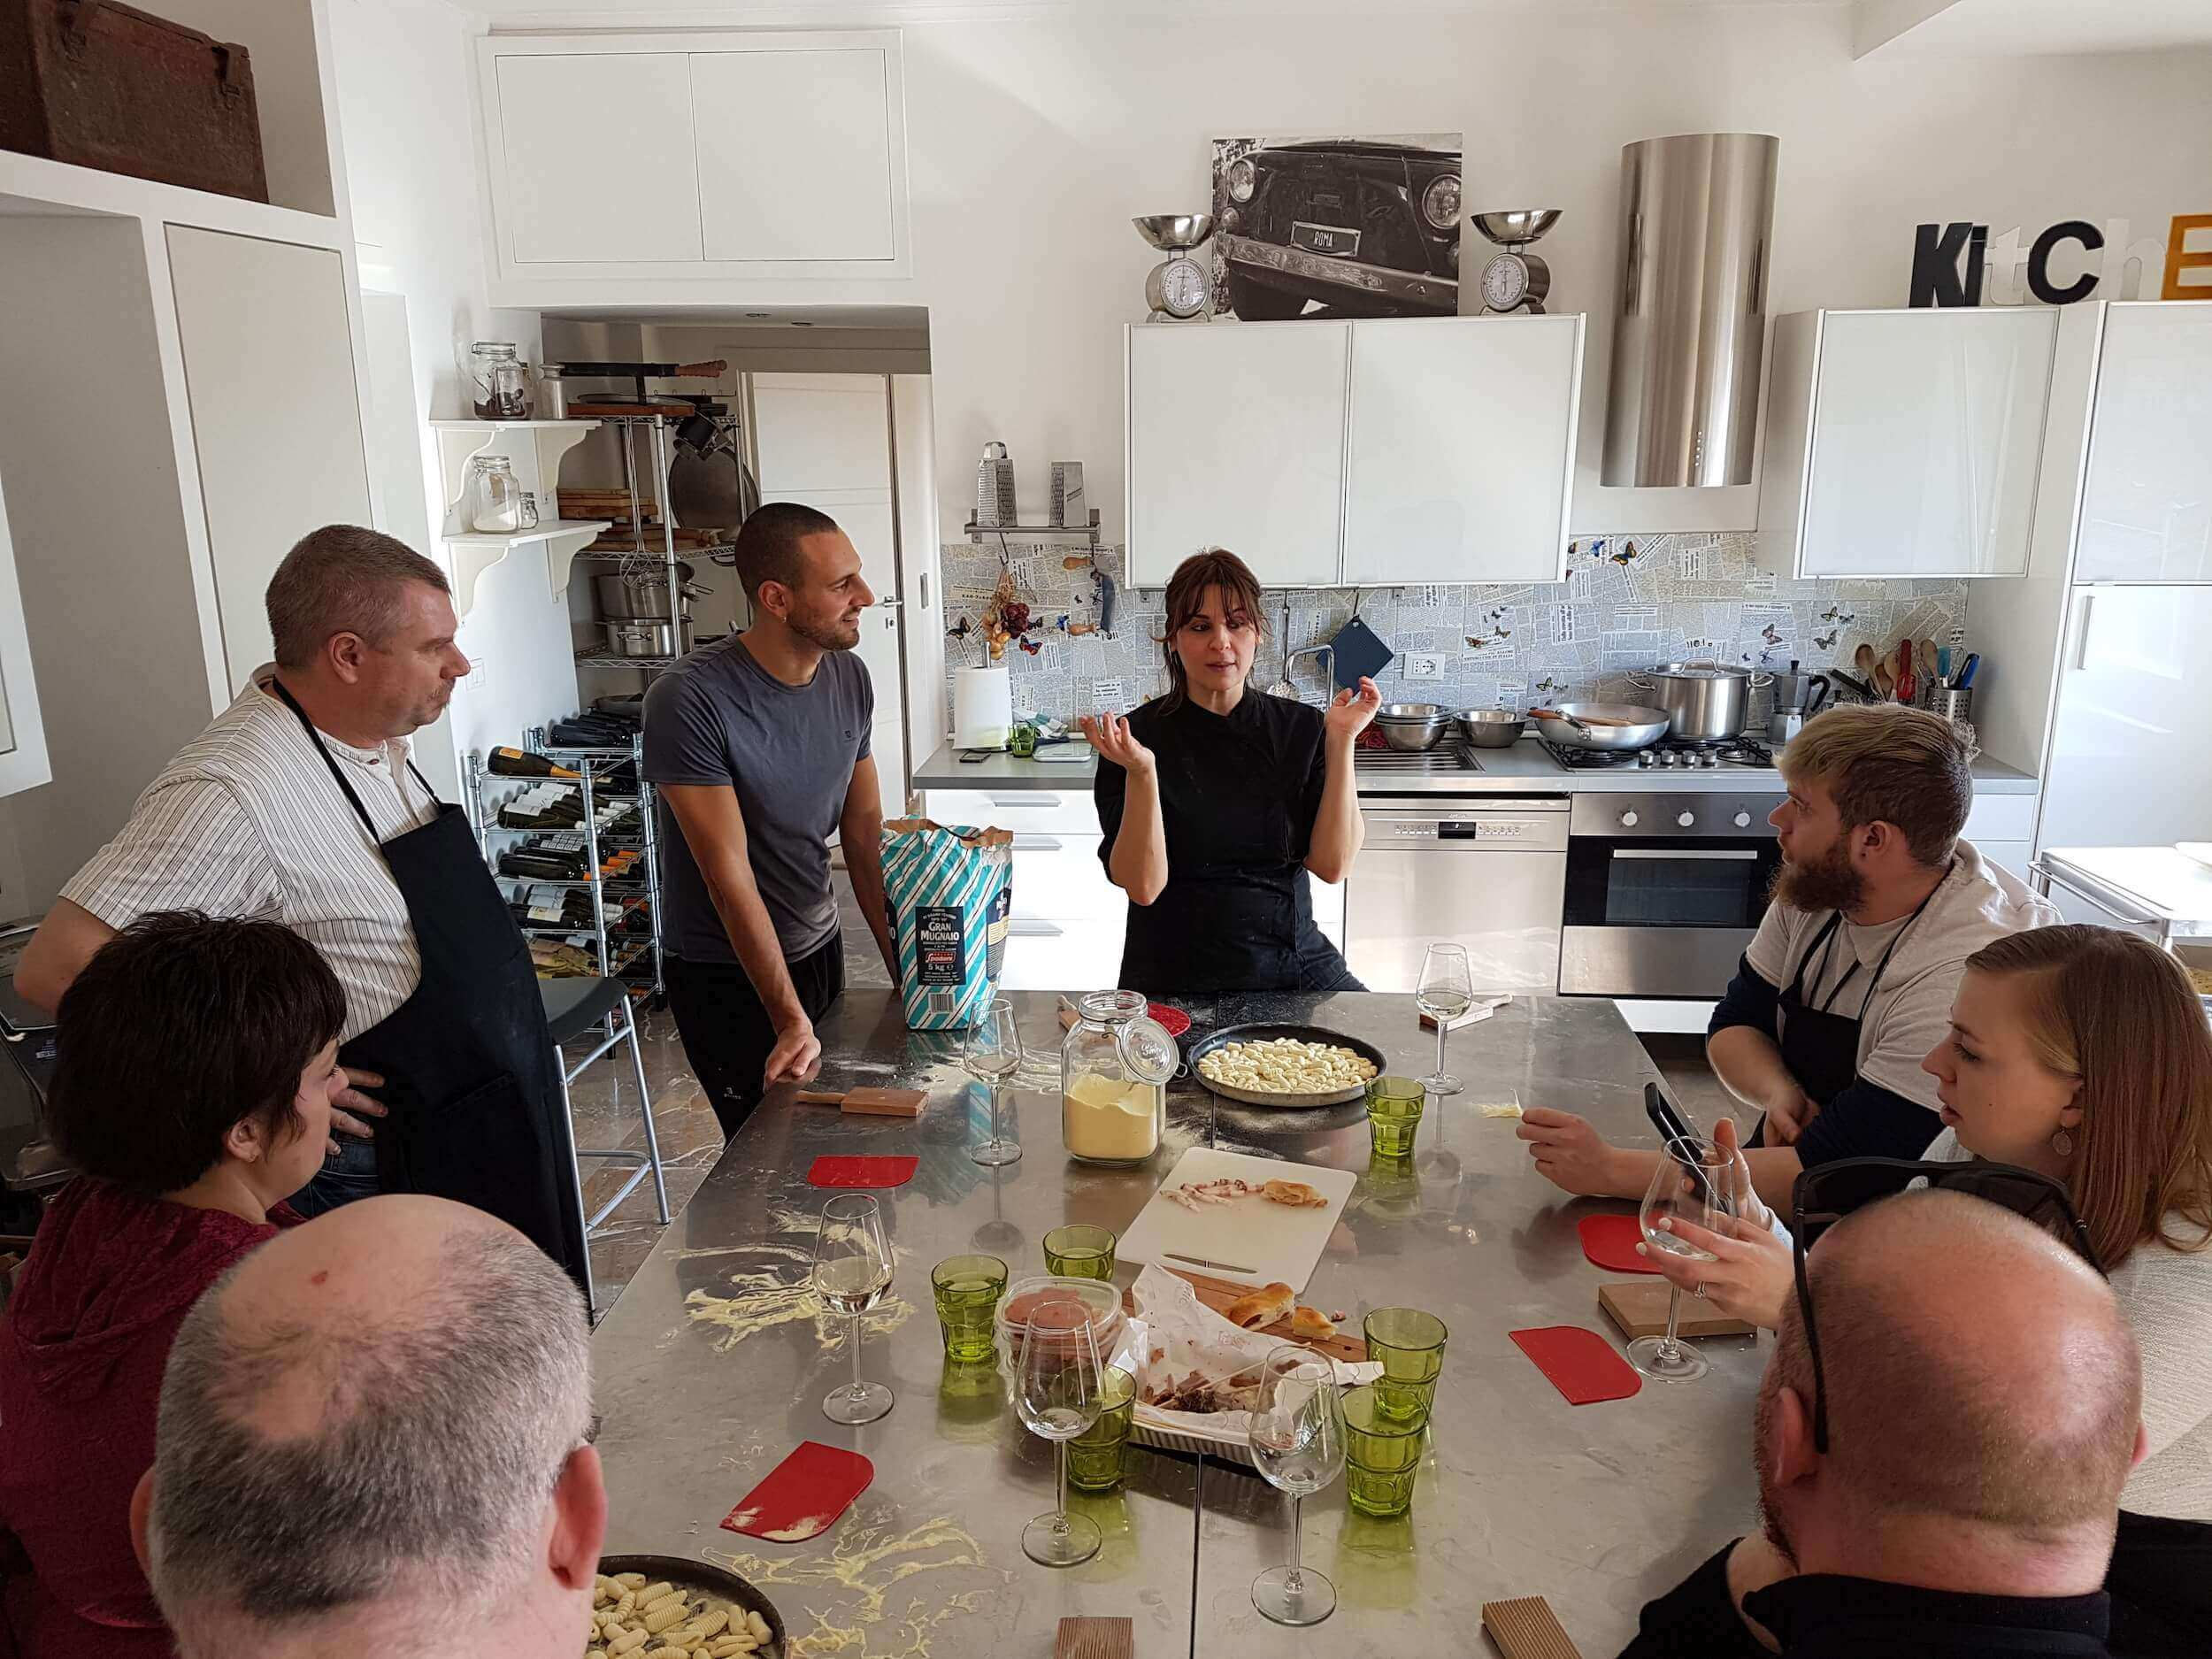 Group of people cooking in a kitchen